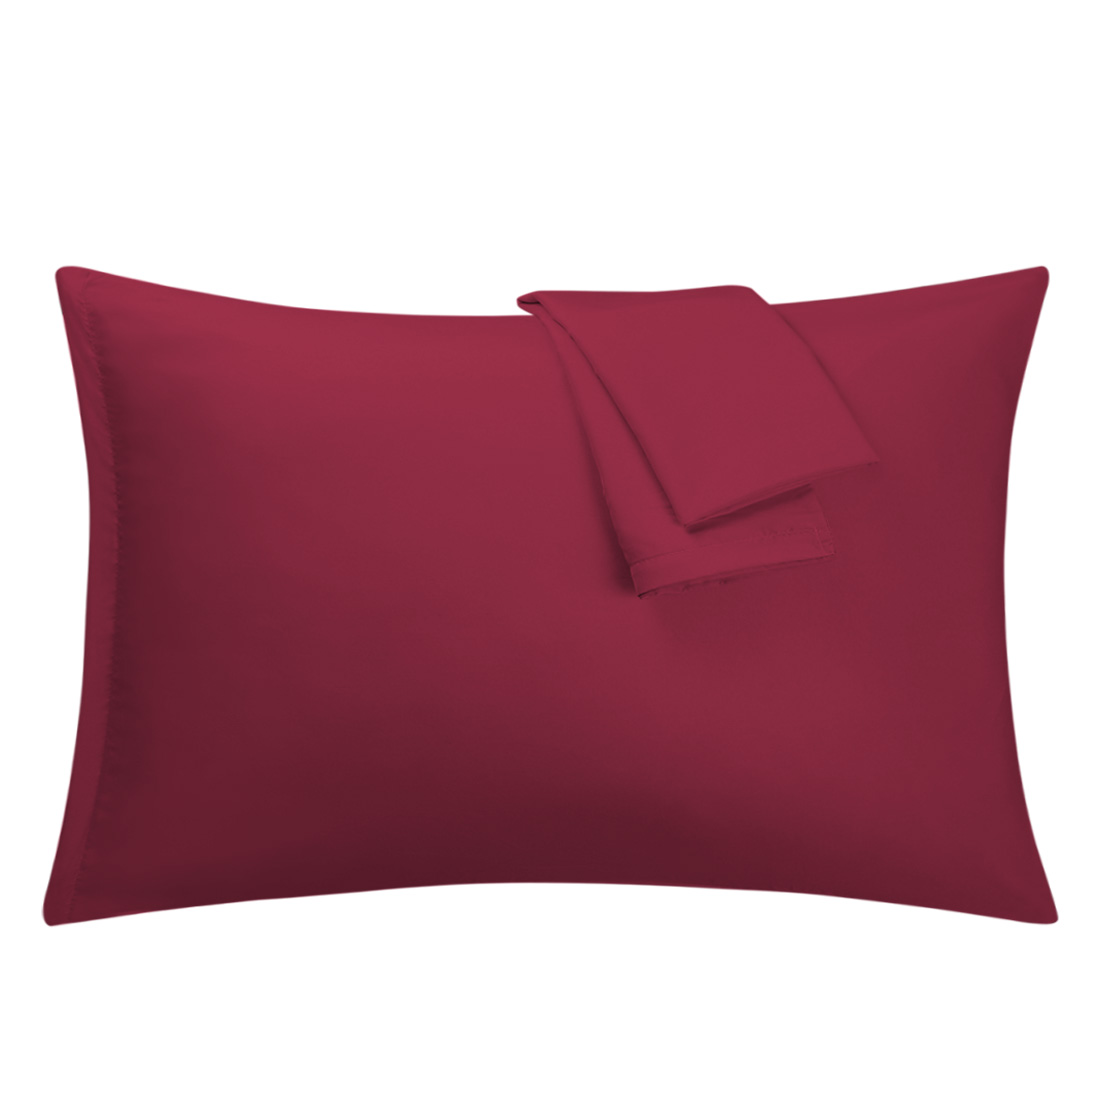 Wine Pillowcases Soft Microfiber Pillow Case Cover with Zipper Standard, 2 Pack